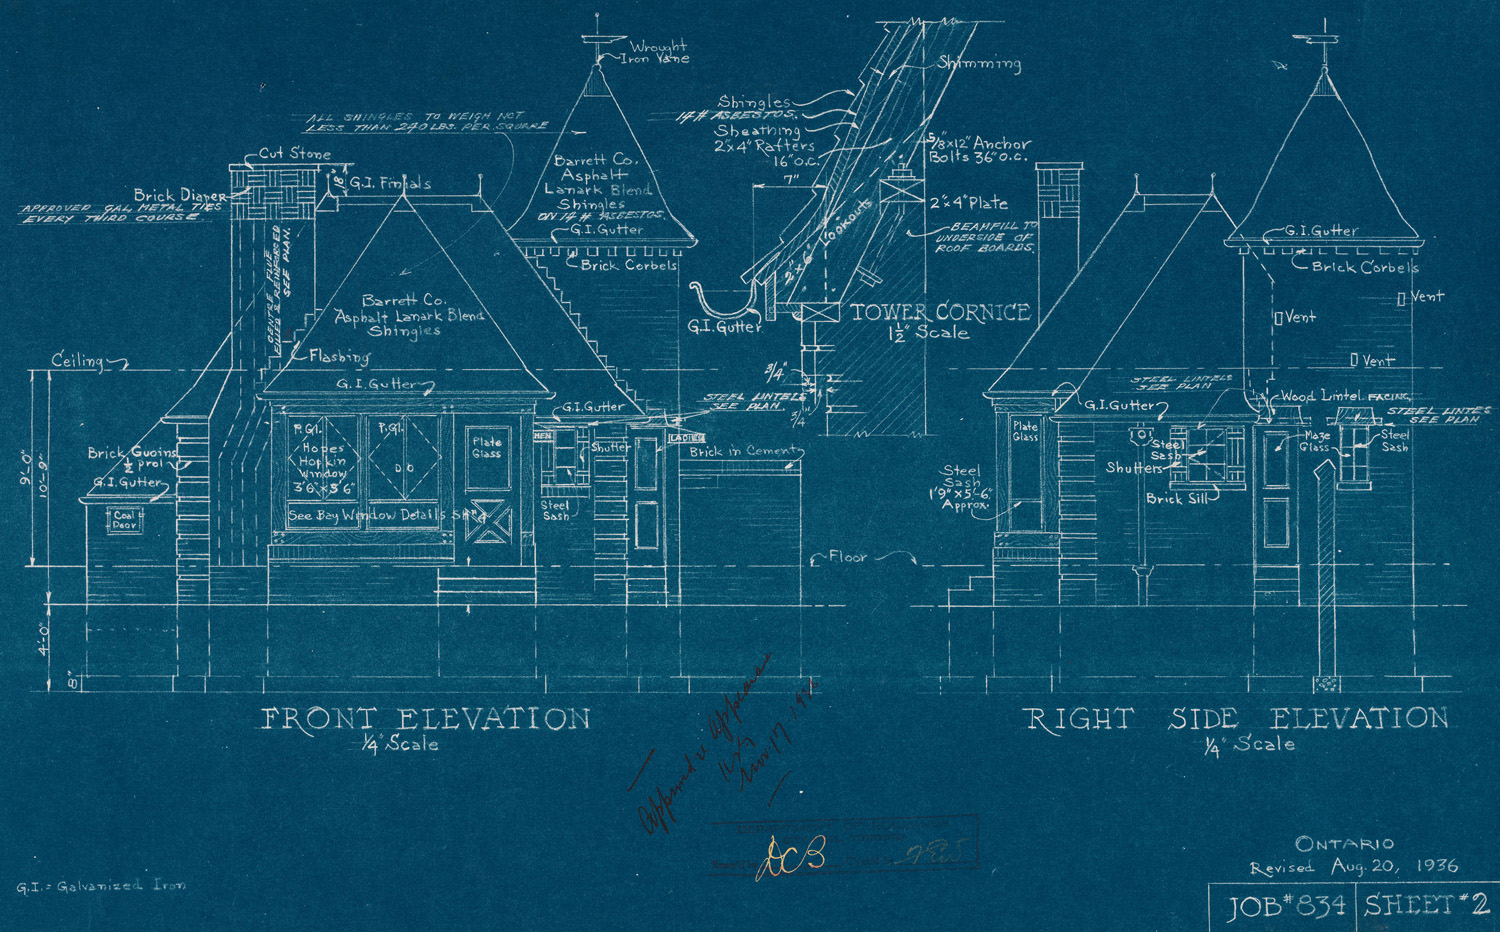 File:Joy Oil gas station blueprints.jpg - Wikimedia Commons